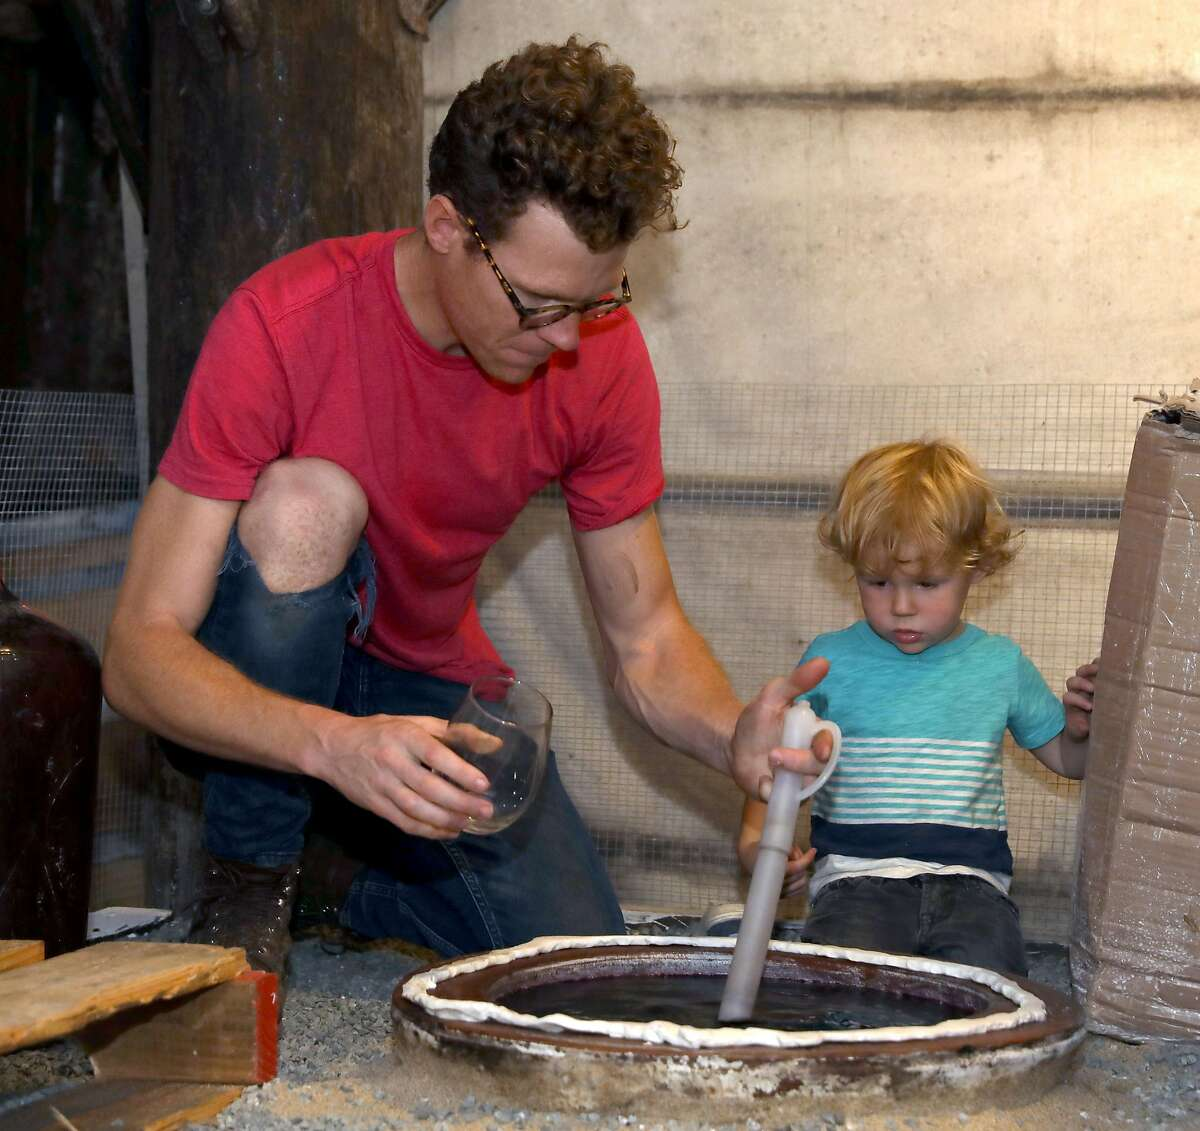 Winemaker Caleb Leisure (left) tastes wine from a qvevri, imported from the Republic of Georgia, with his two year old son Henry Leisure (right) at Coturri Winery on Tuesday, Aug. 13, 2019, in Glen Ellen, Calif.